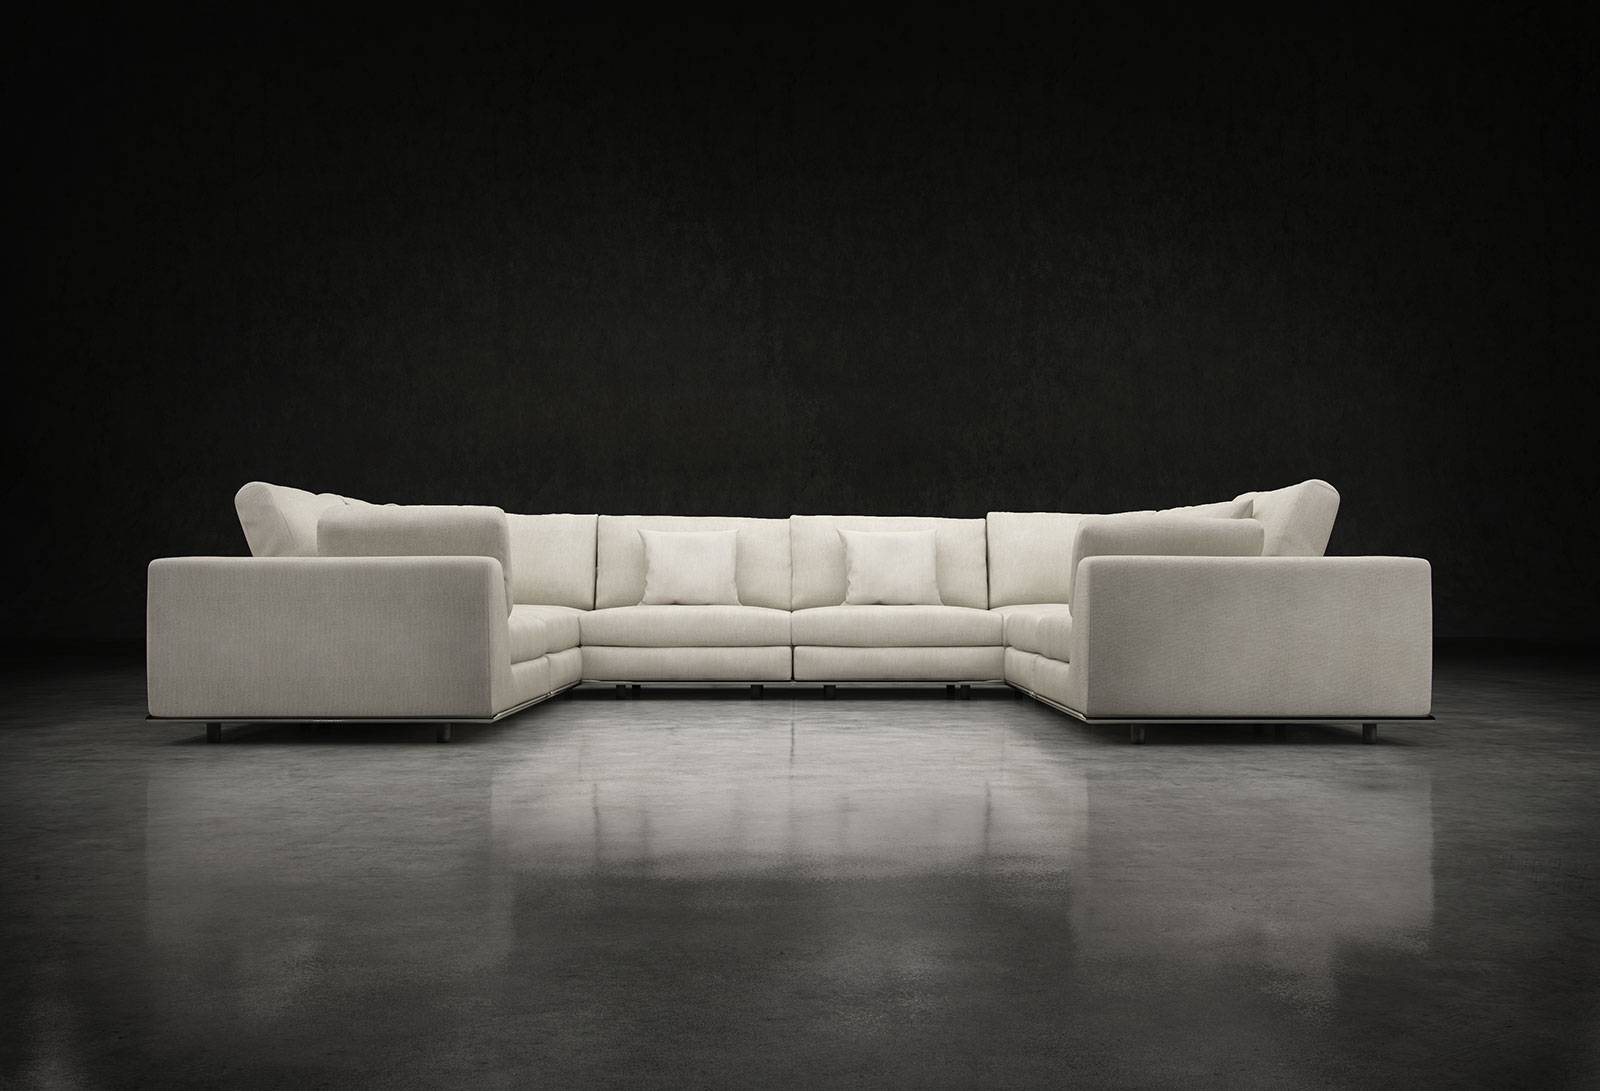 Modloft Modern Furniture, Sofas intended for Mod Sofas (Image 12 of 30)